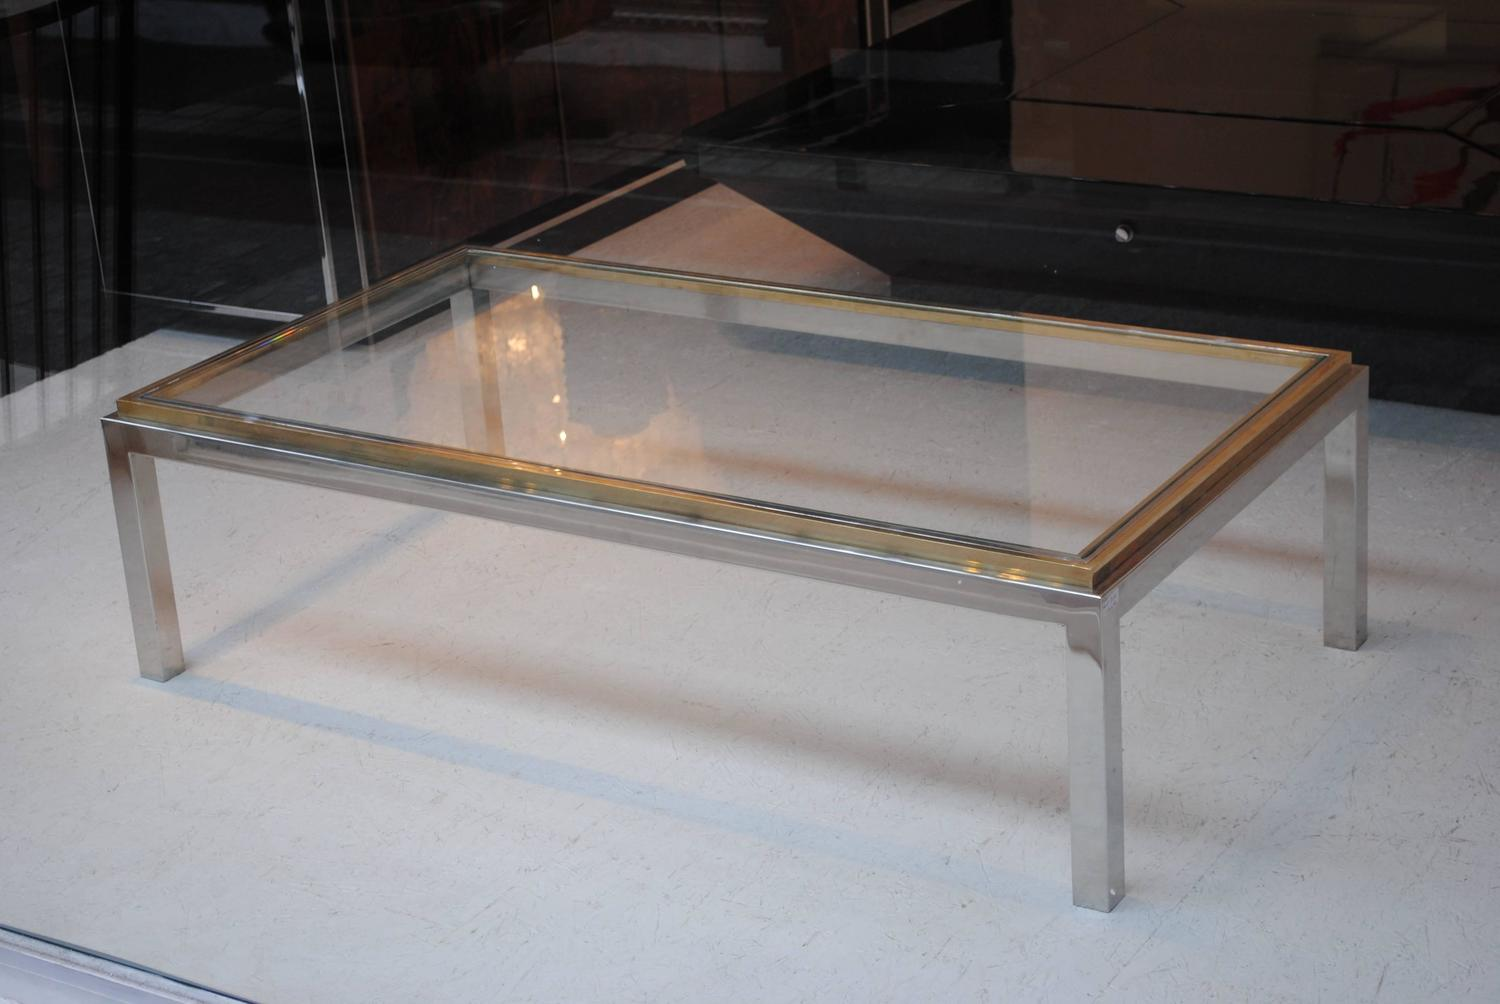 39 flaminia 39 coffee table by willy rizzo for sale at 1stdibs for Table willy rizzo